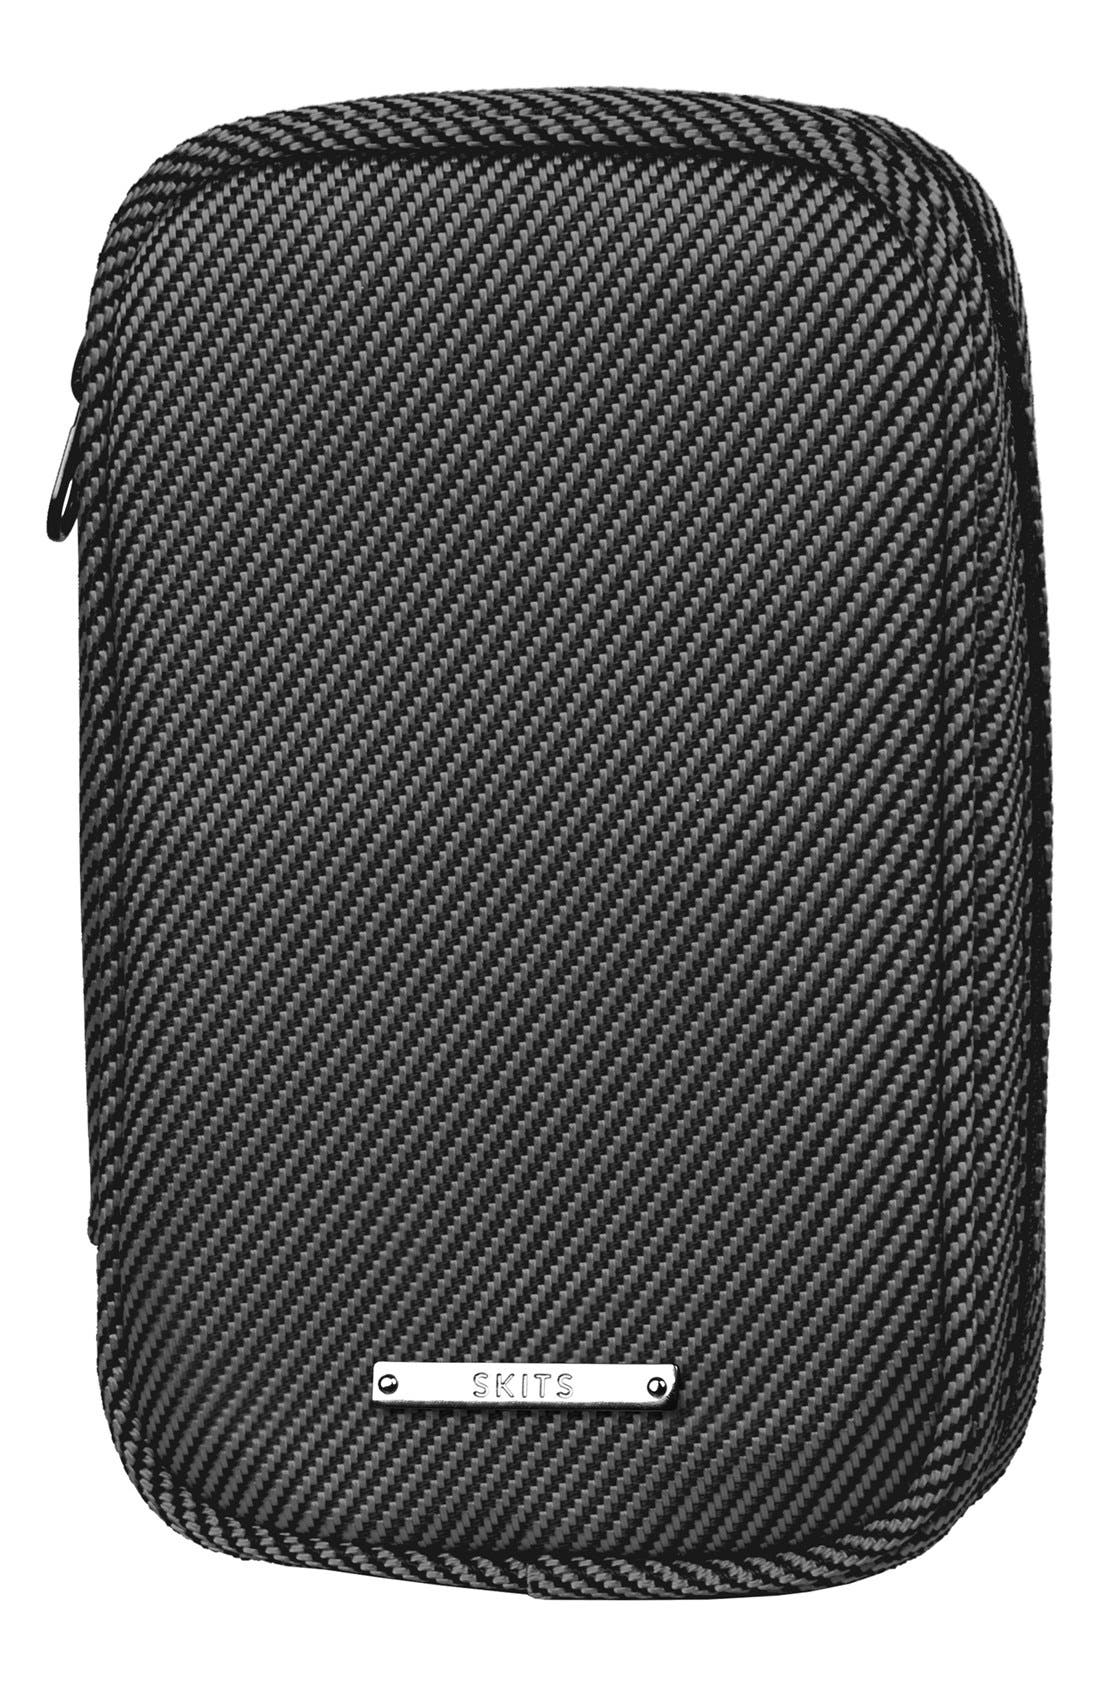 SKITS Clever - Carbon Stripe Tech Case